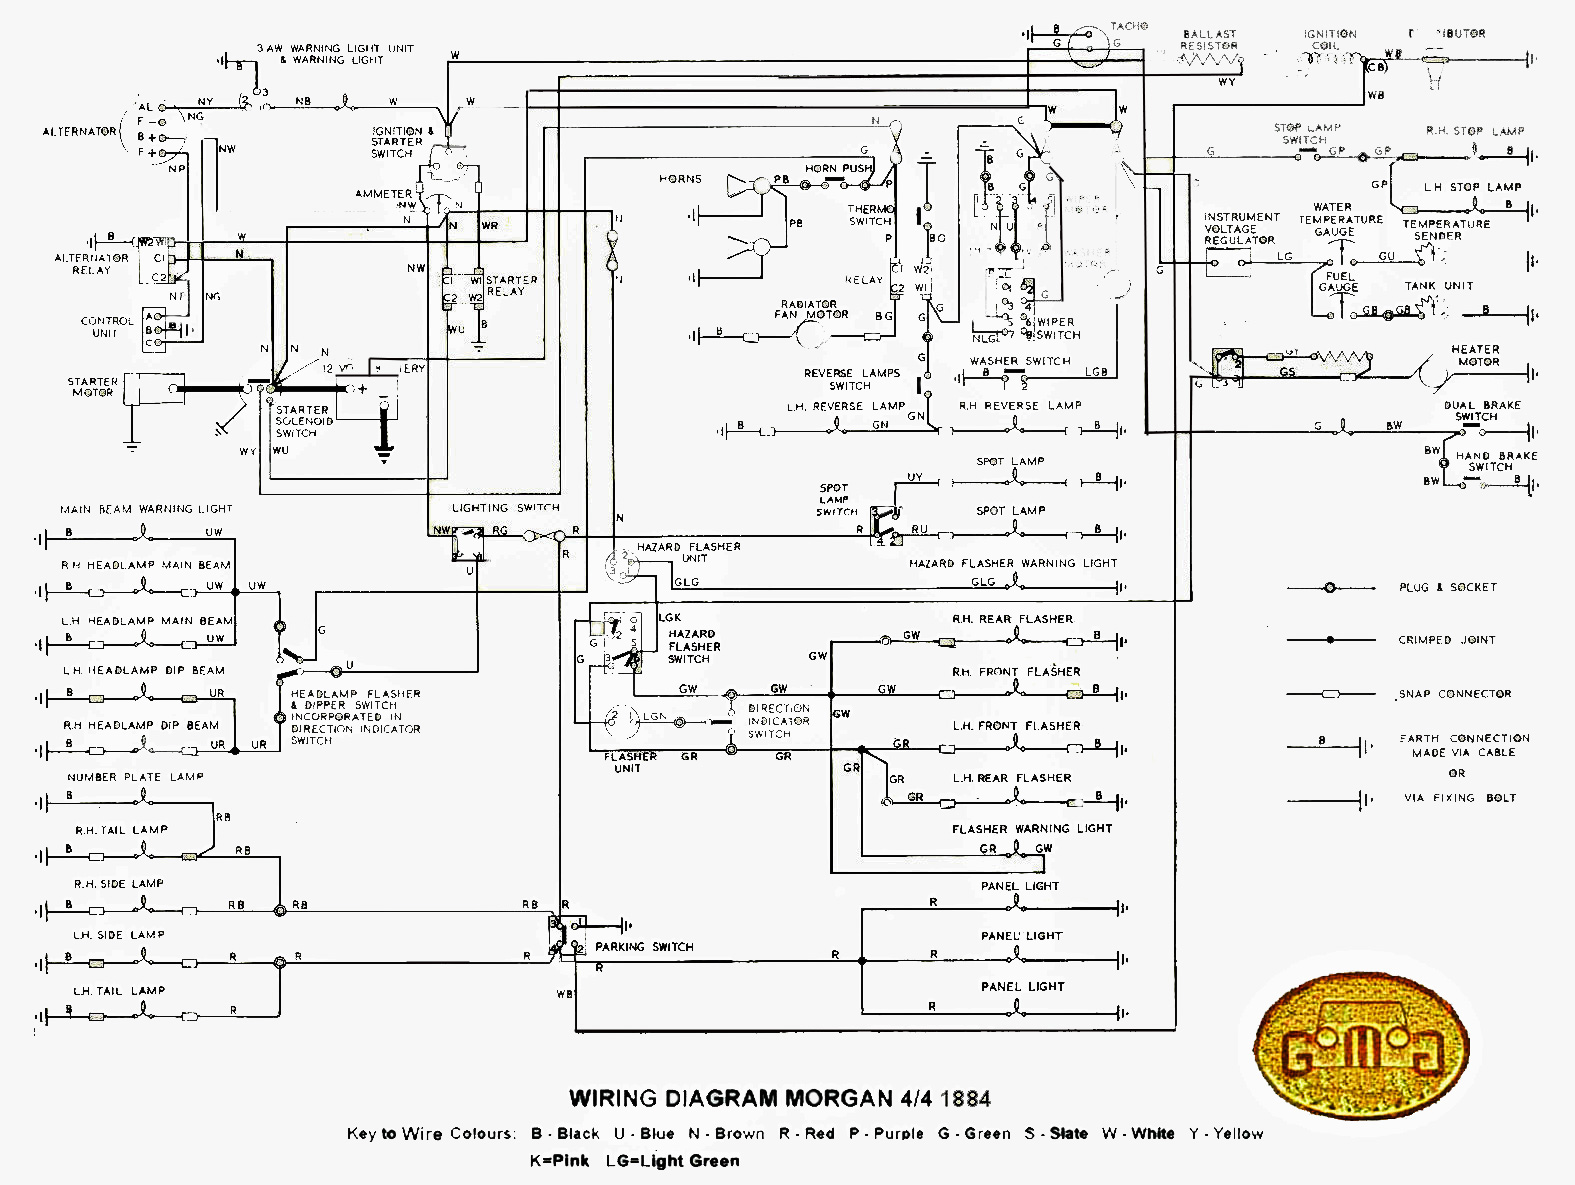 hight resolution of cove spa wiring diagram wiring diagram third level refrigerator wiring schematic morgan 4 4 wiring diagram